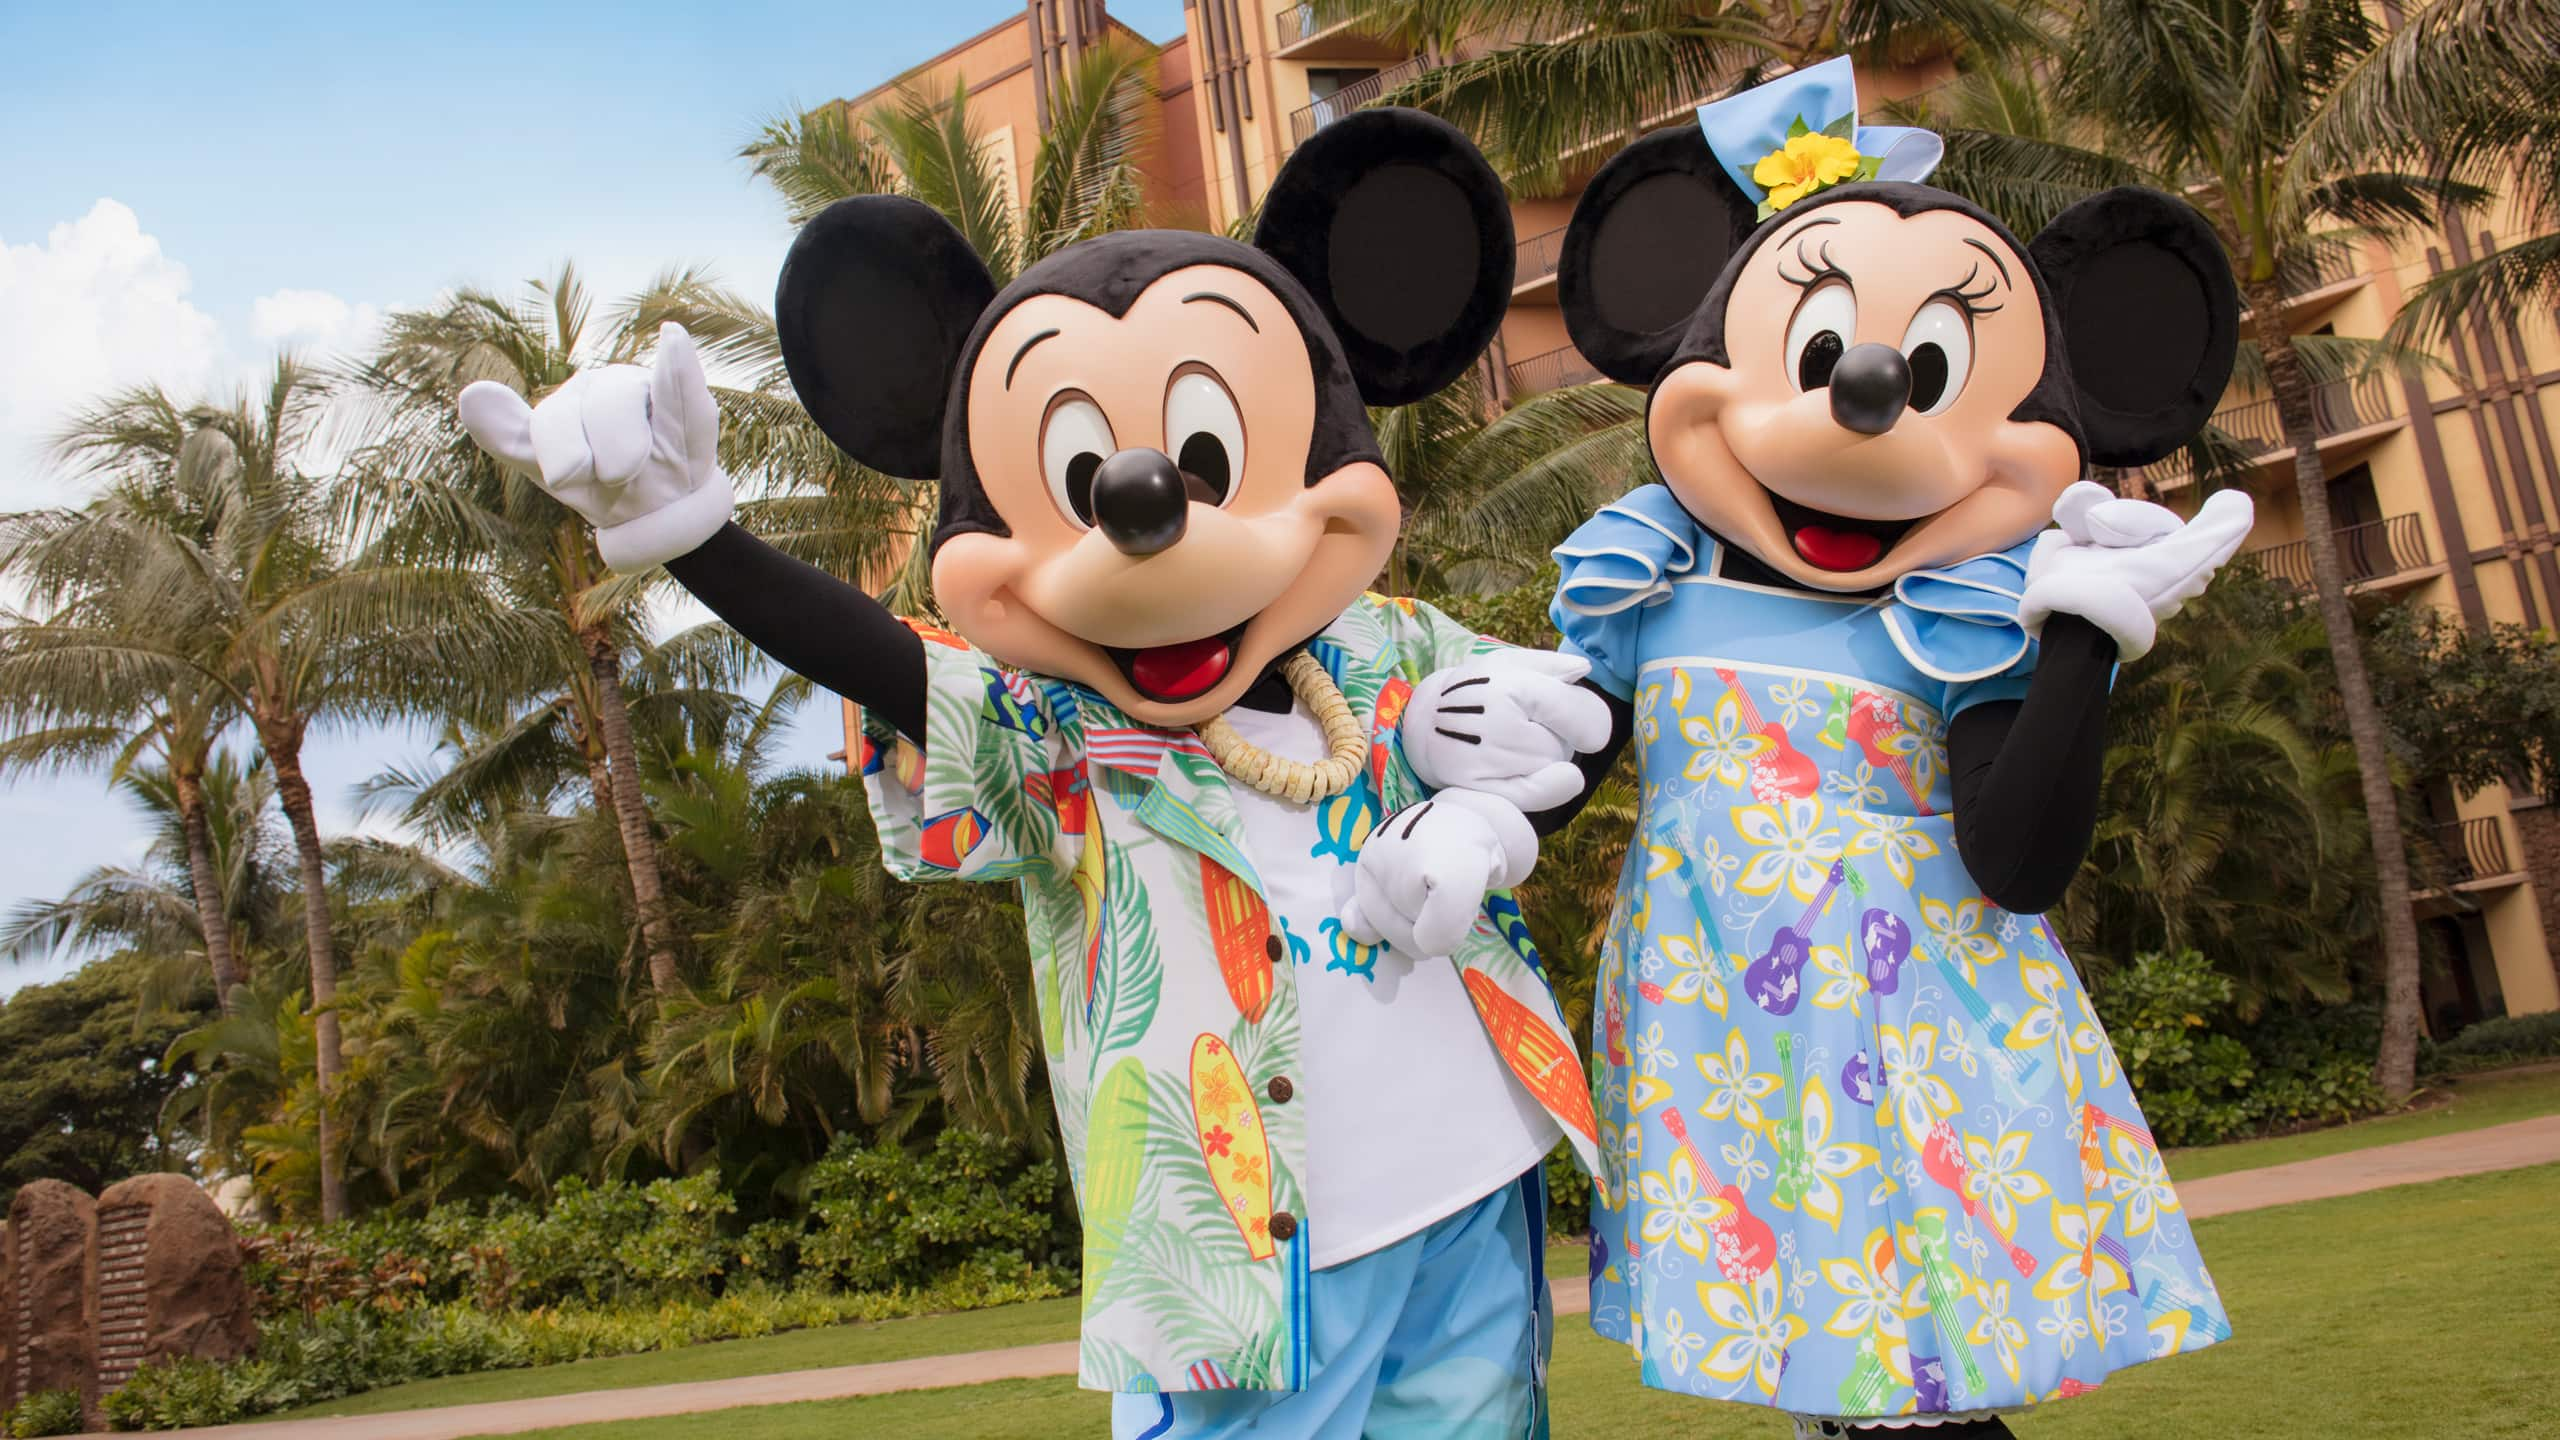 Mickey Mouse and Minnie Mouse, dressed in Hawaiian-style outfits, stand in front of a wing of Aulani Resort